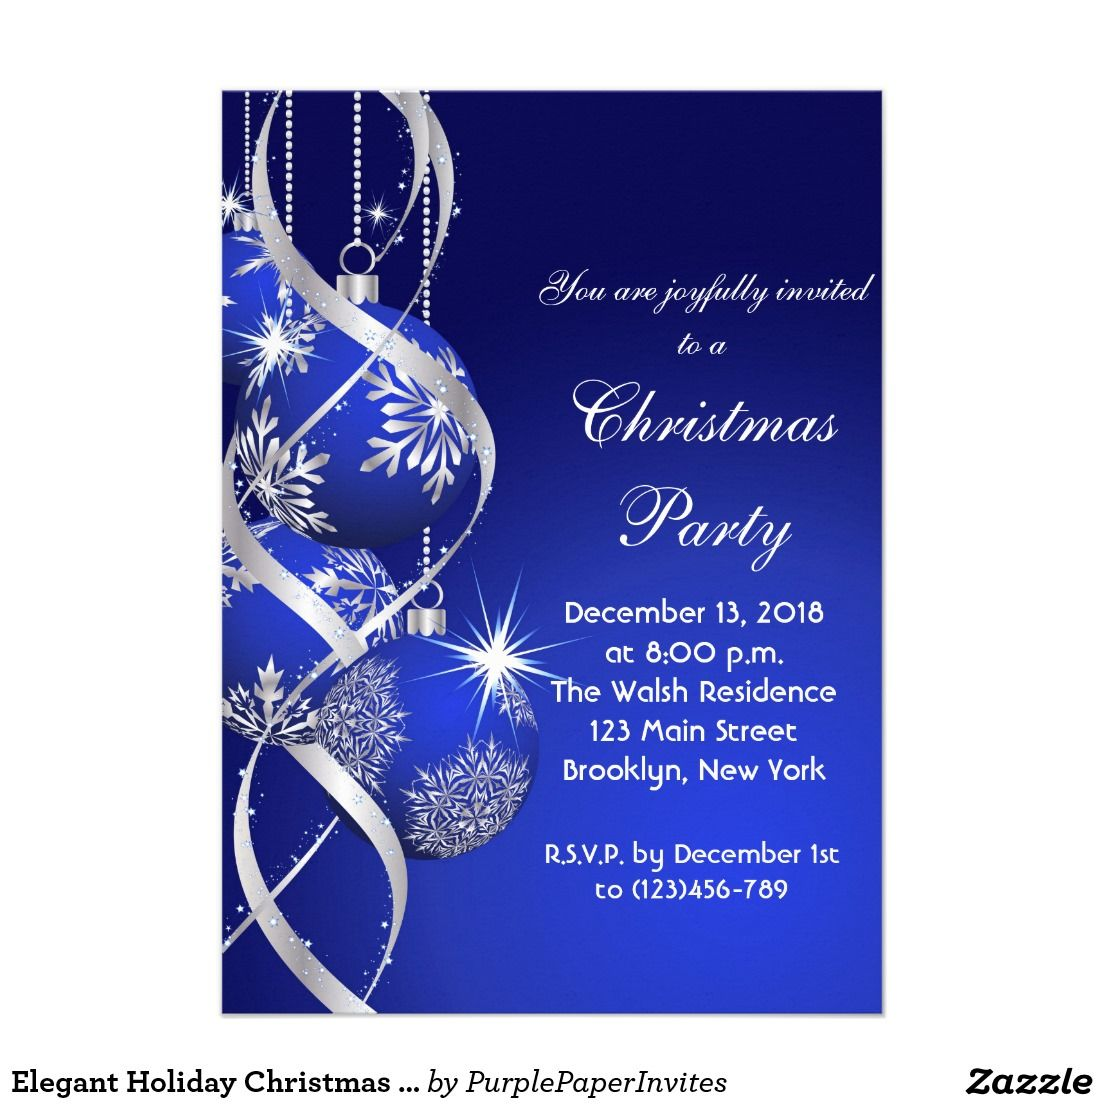 Elegant Holiday Christmas Party Invitation Card | Christmas Party ...